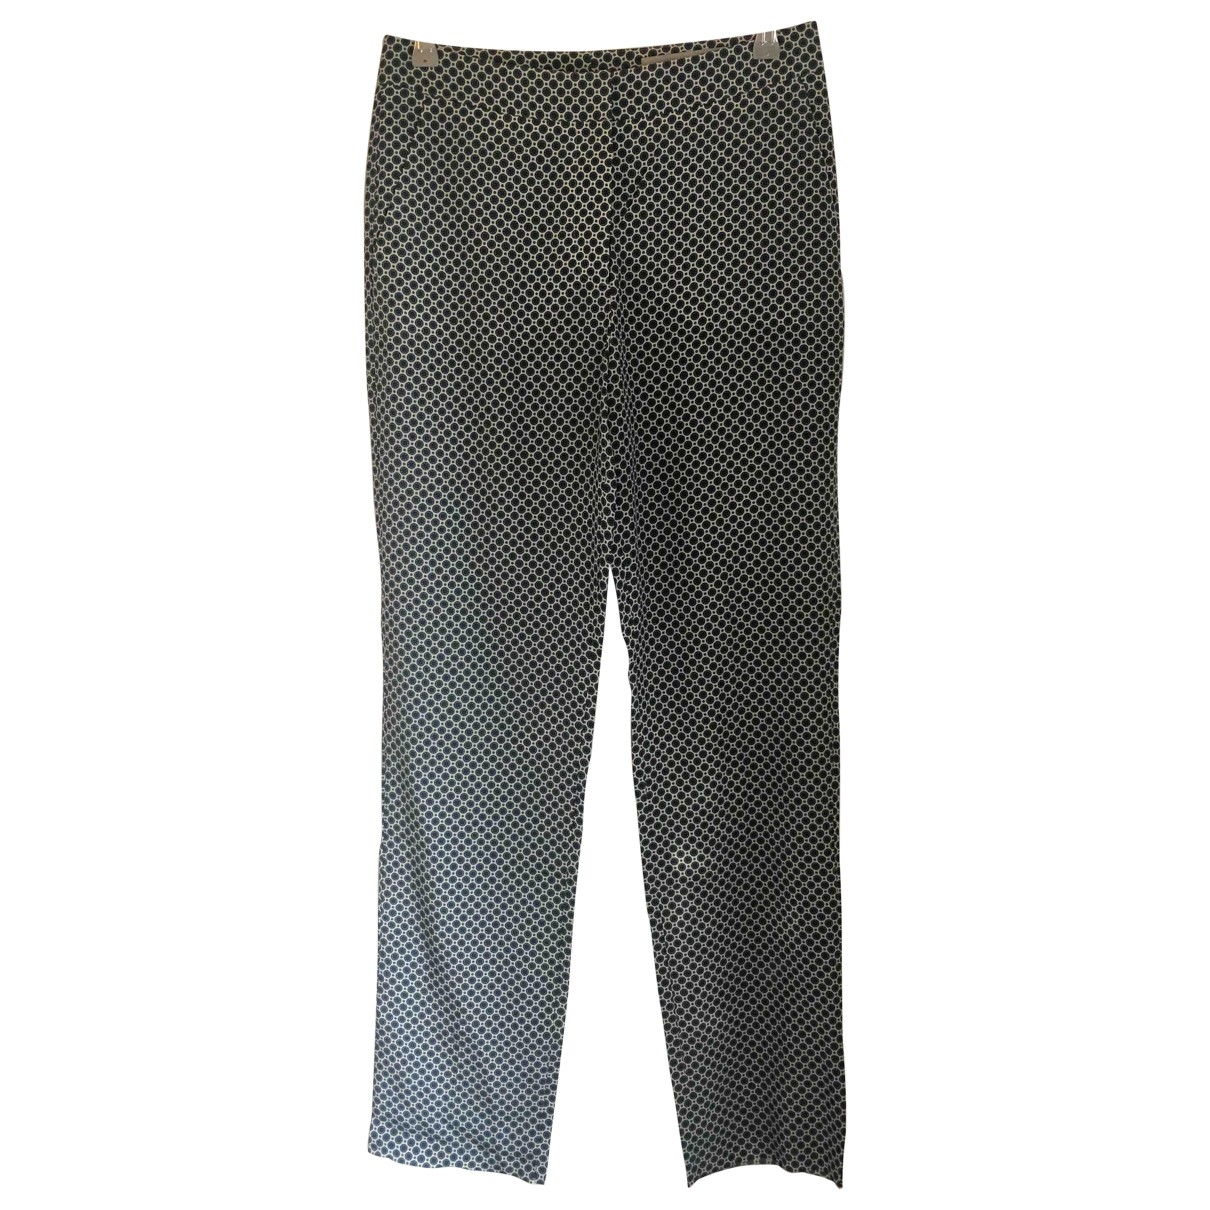 Pantalon pitillo de Seda Stella Mccartney